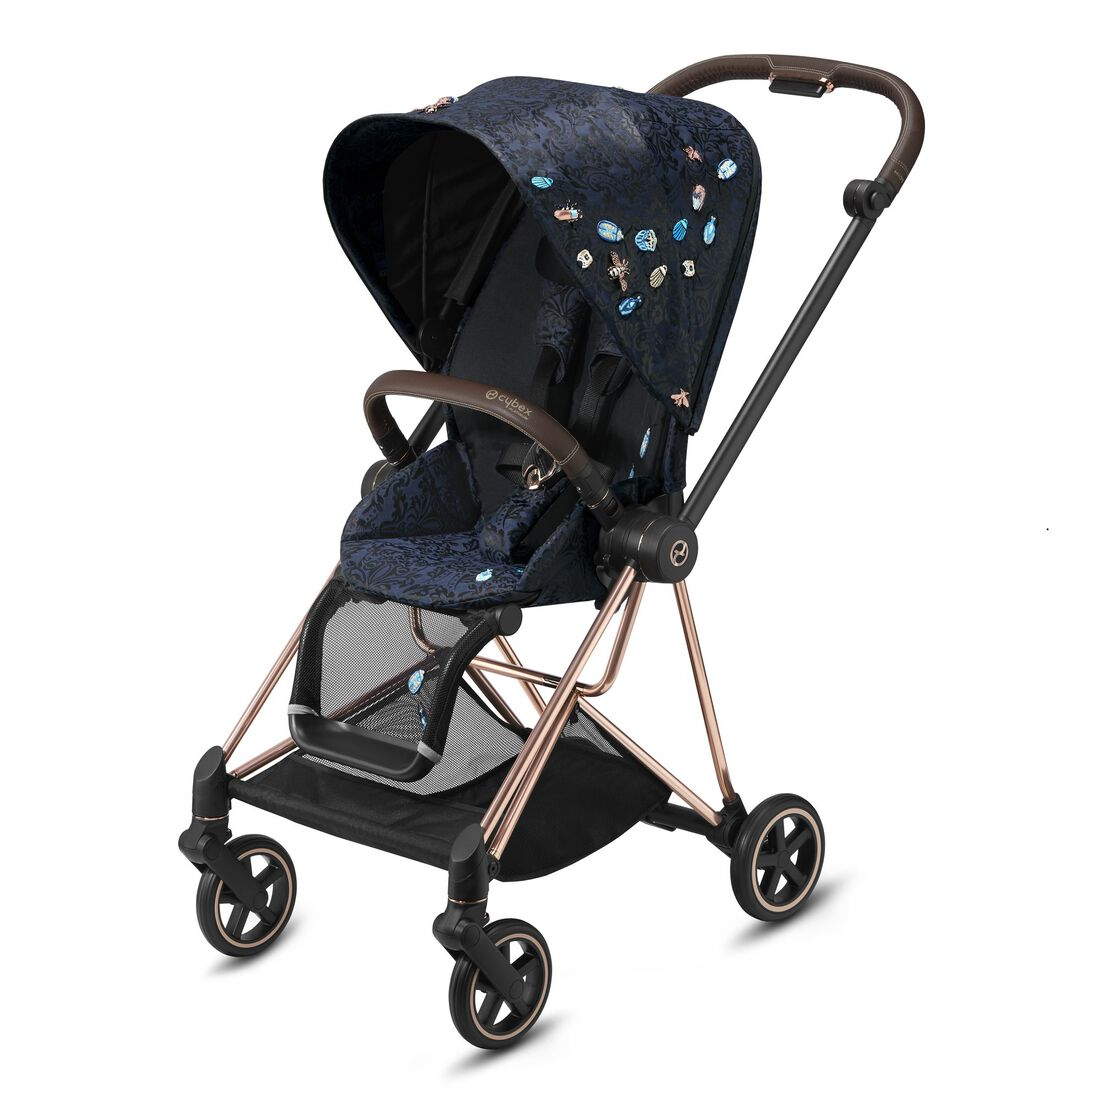 CYBEX Mios Seat Pack - Jewels of Nature in Jewels of Nature large image number 2